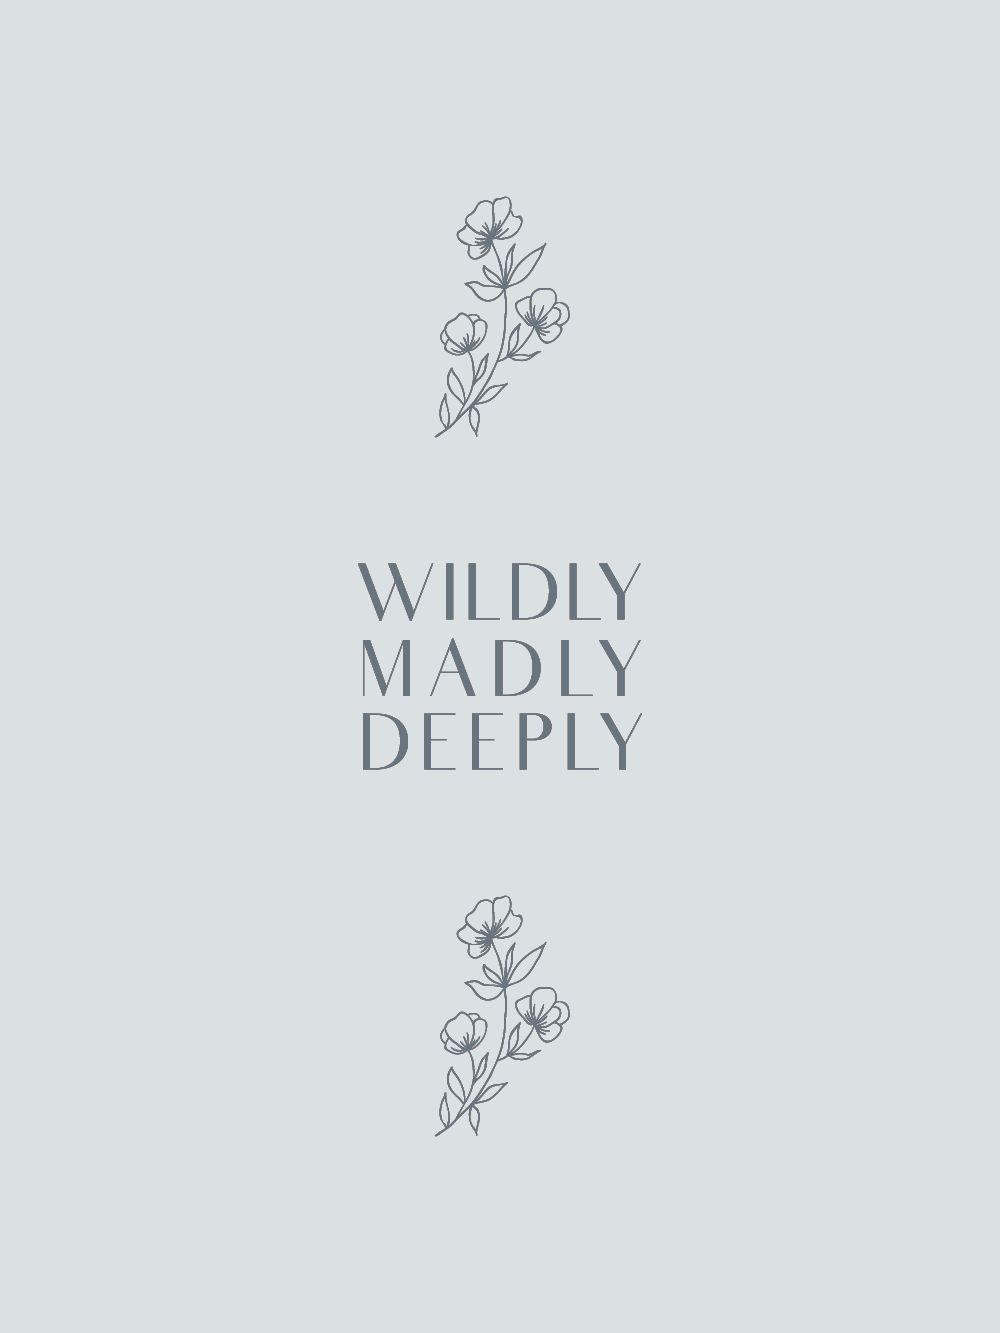 Wildly_Madly_Deeply2.png